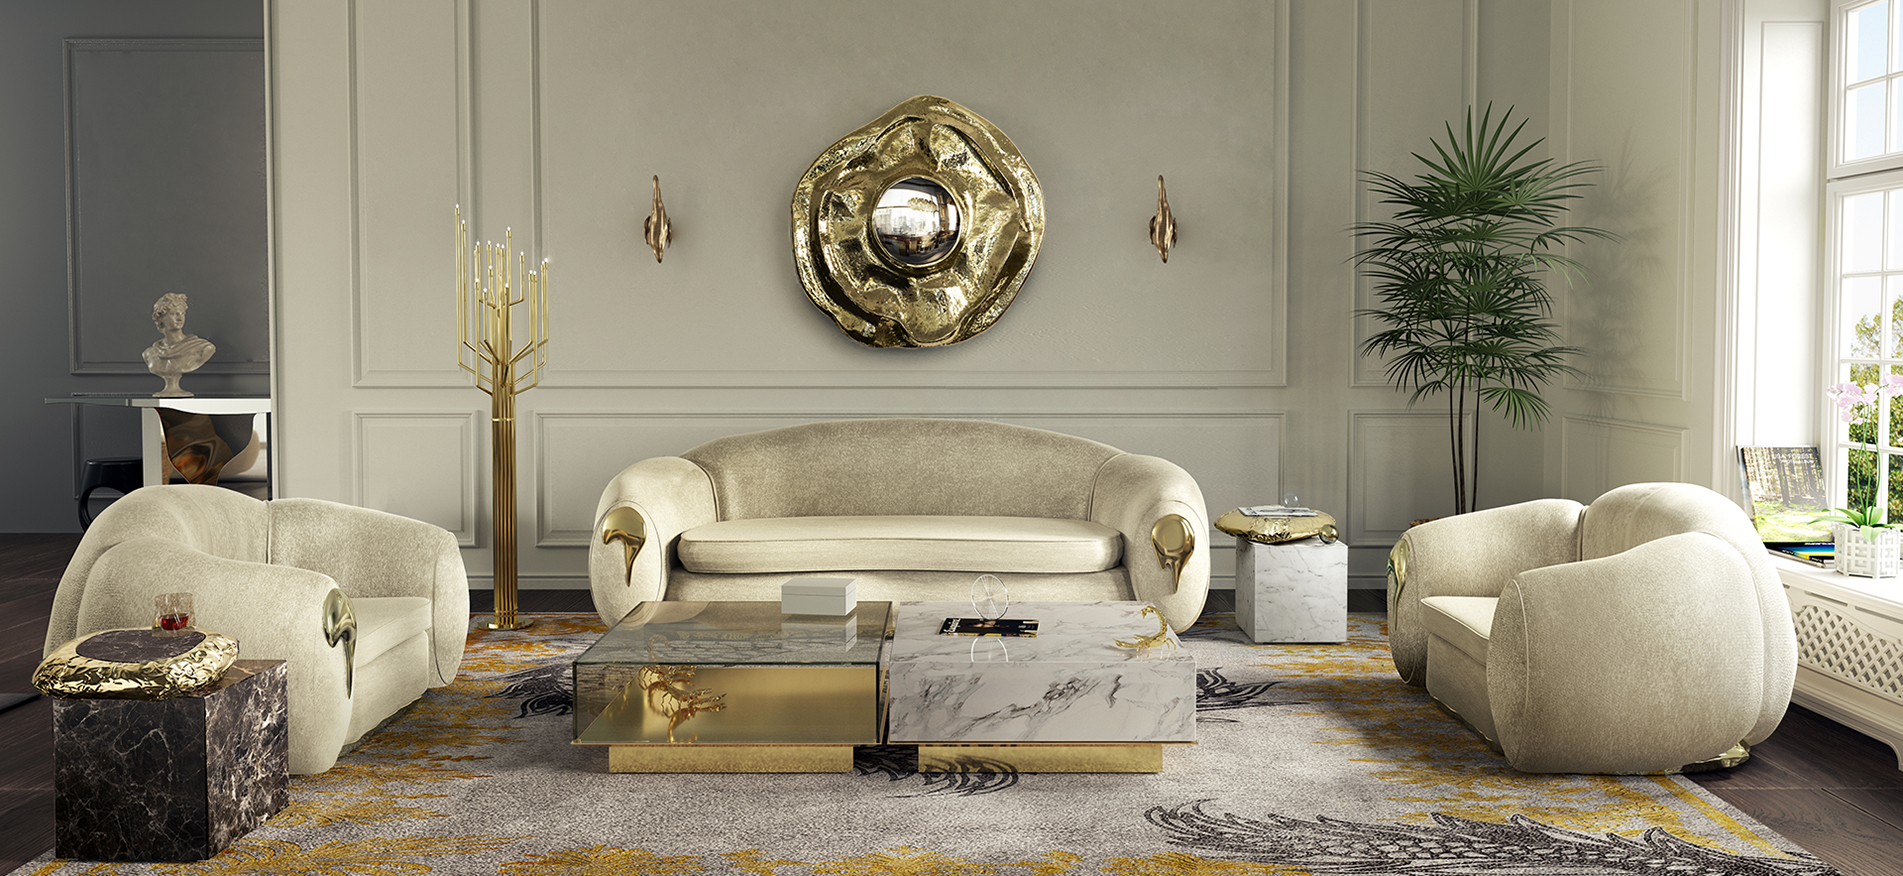 Boca Do Lobo - Luxury Exclusive Design Furniture Manufactures Home Liry Study Interior Design Html on